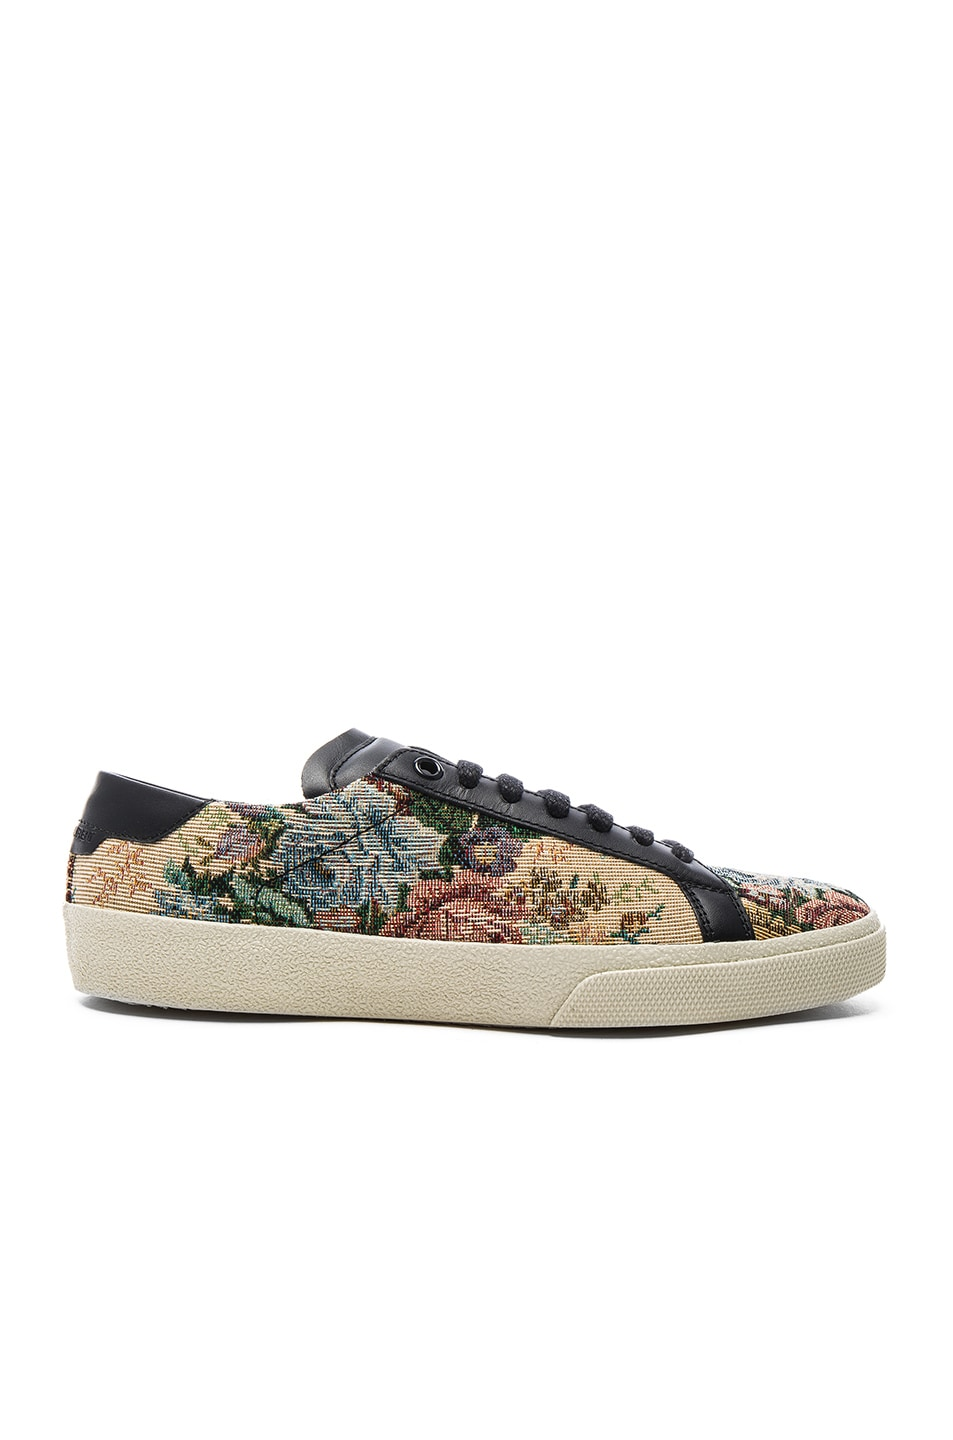 Image 1 of Saint Laurent Court Classic Floral Tapestry Sneakers in Black & Multi